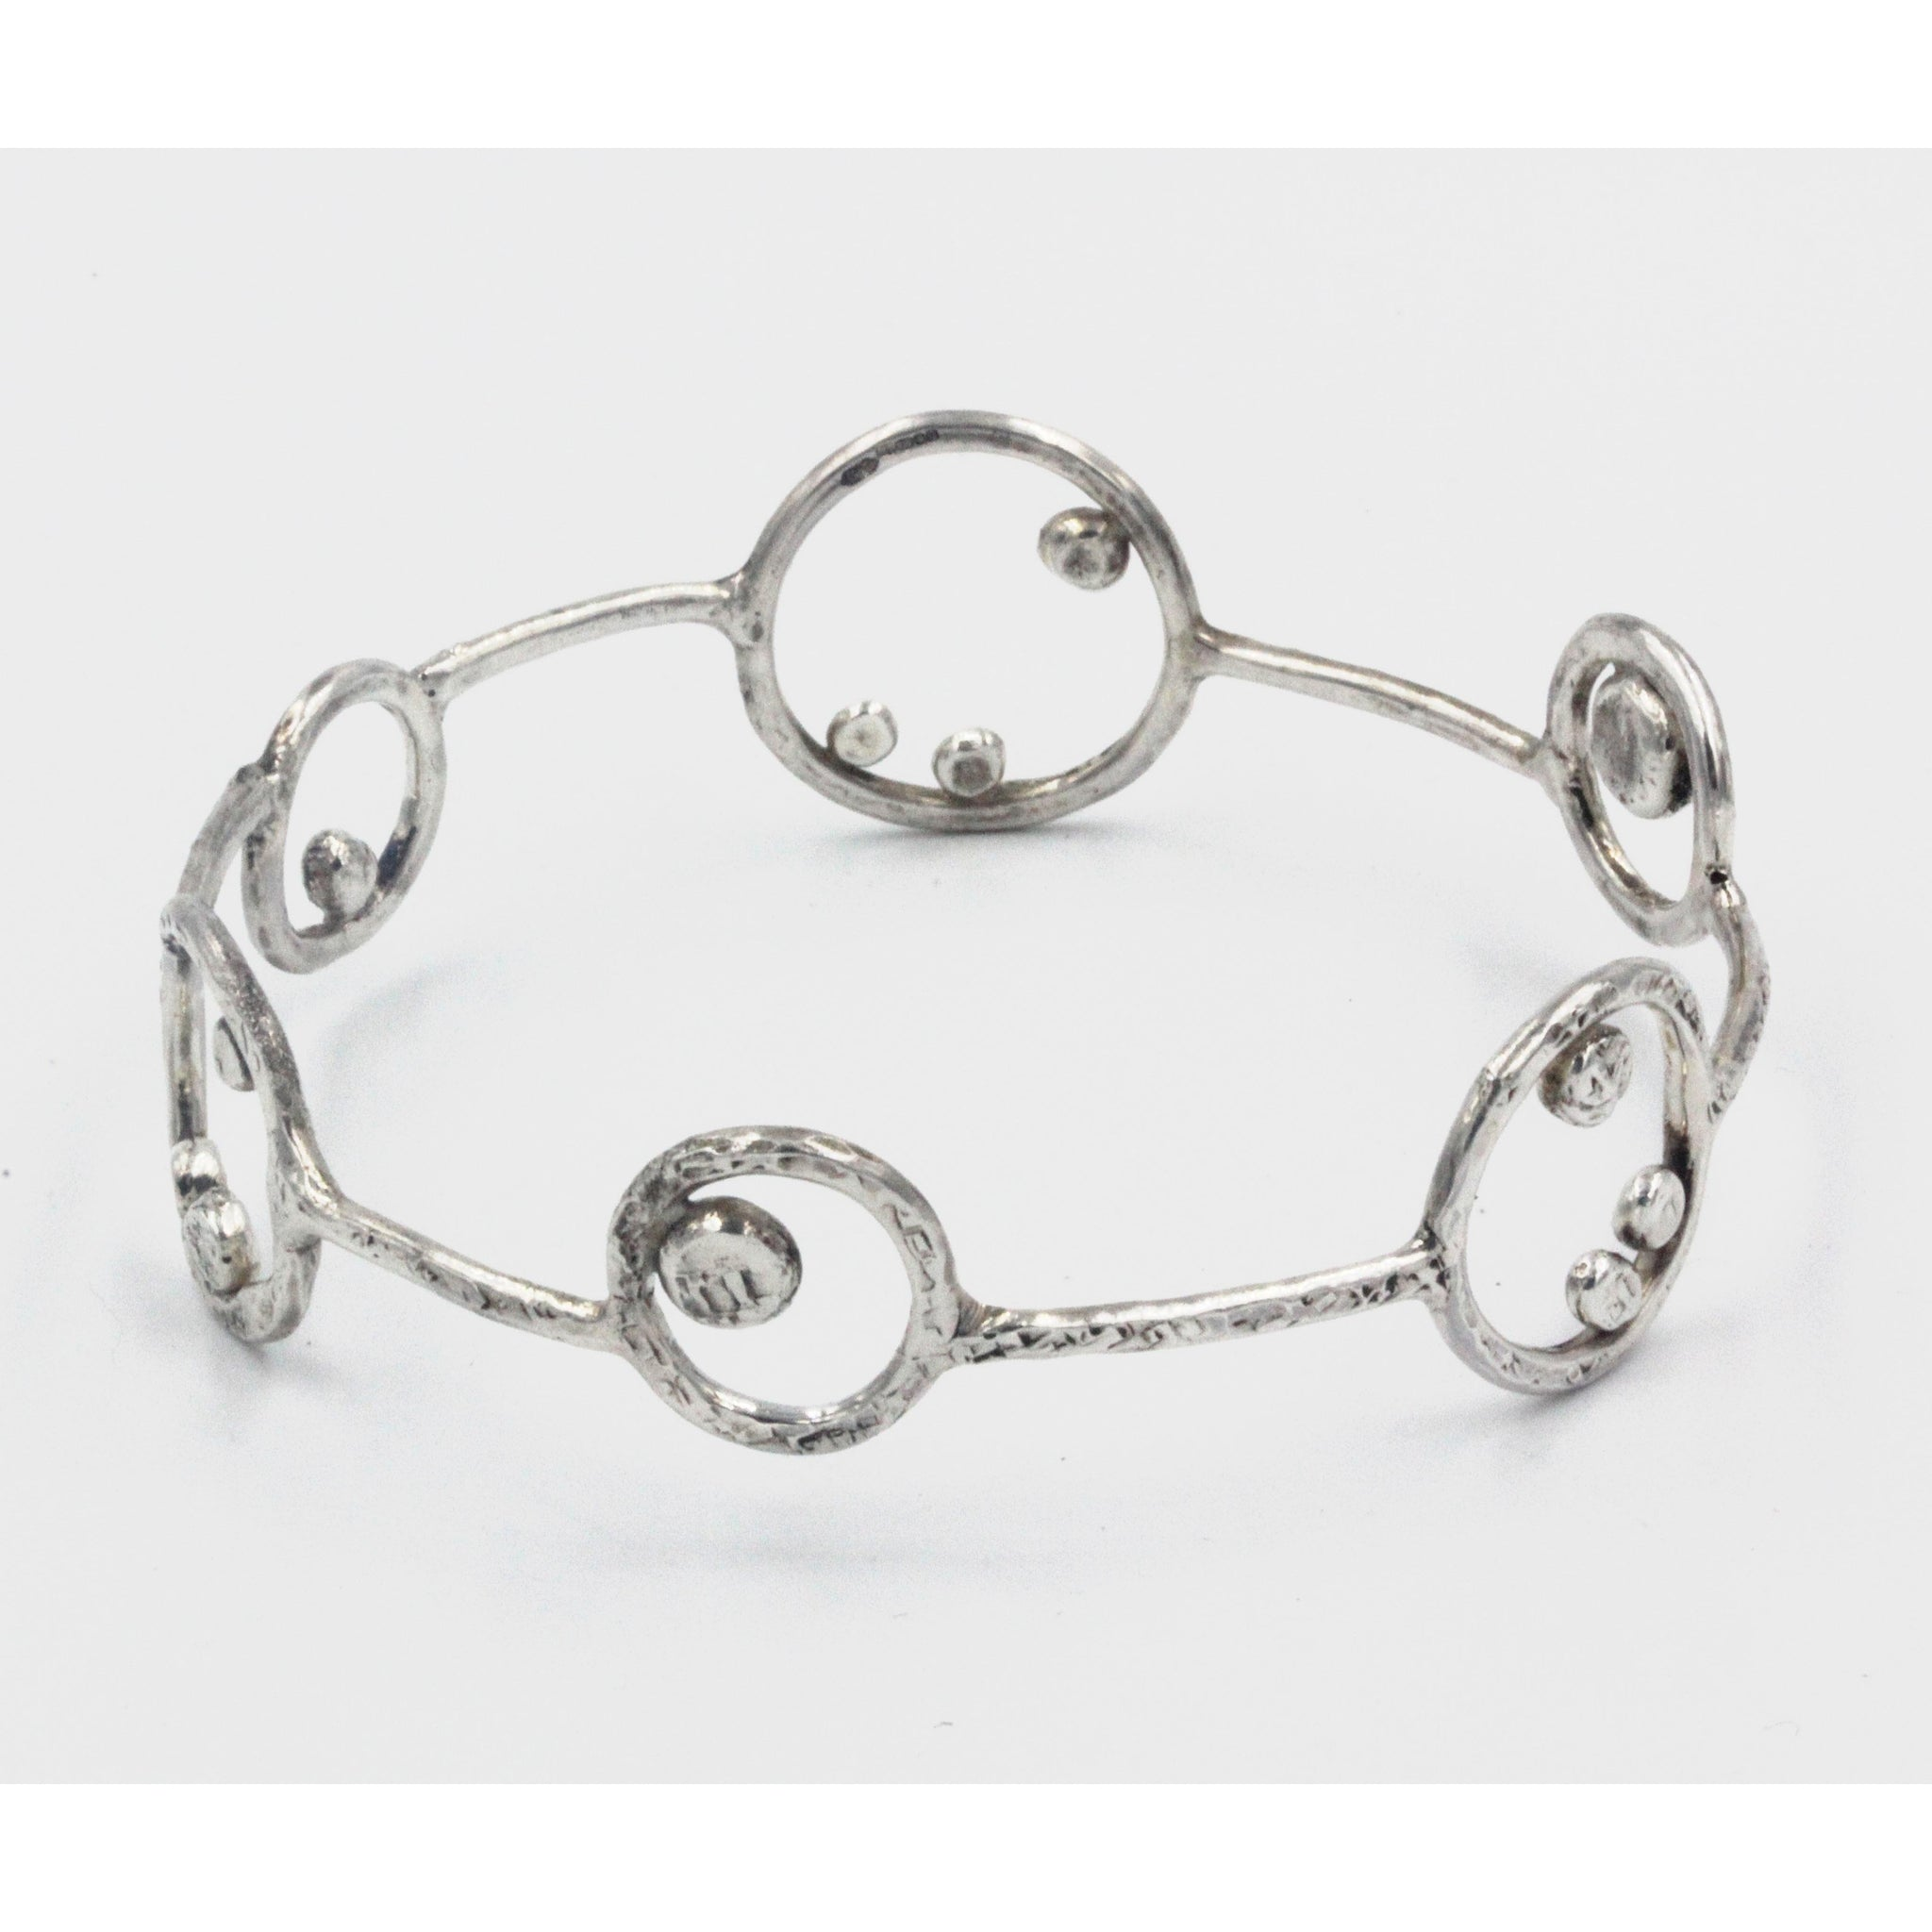 Handmade 'Orbit' Bracelet by Gemma Tremayne Jewellery. Handcrafted in sterling silver, this bangle is inspired by the orbit of planets and moons within our solar system, and features a truly unique design based around circles